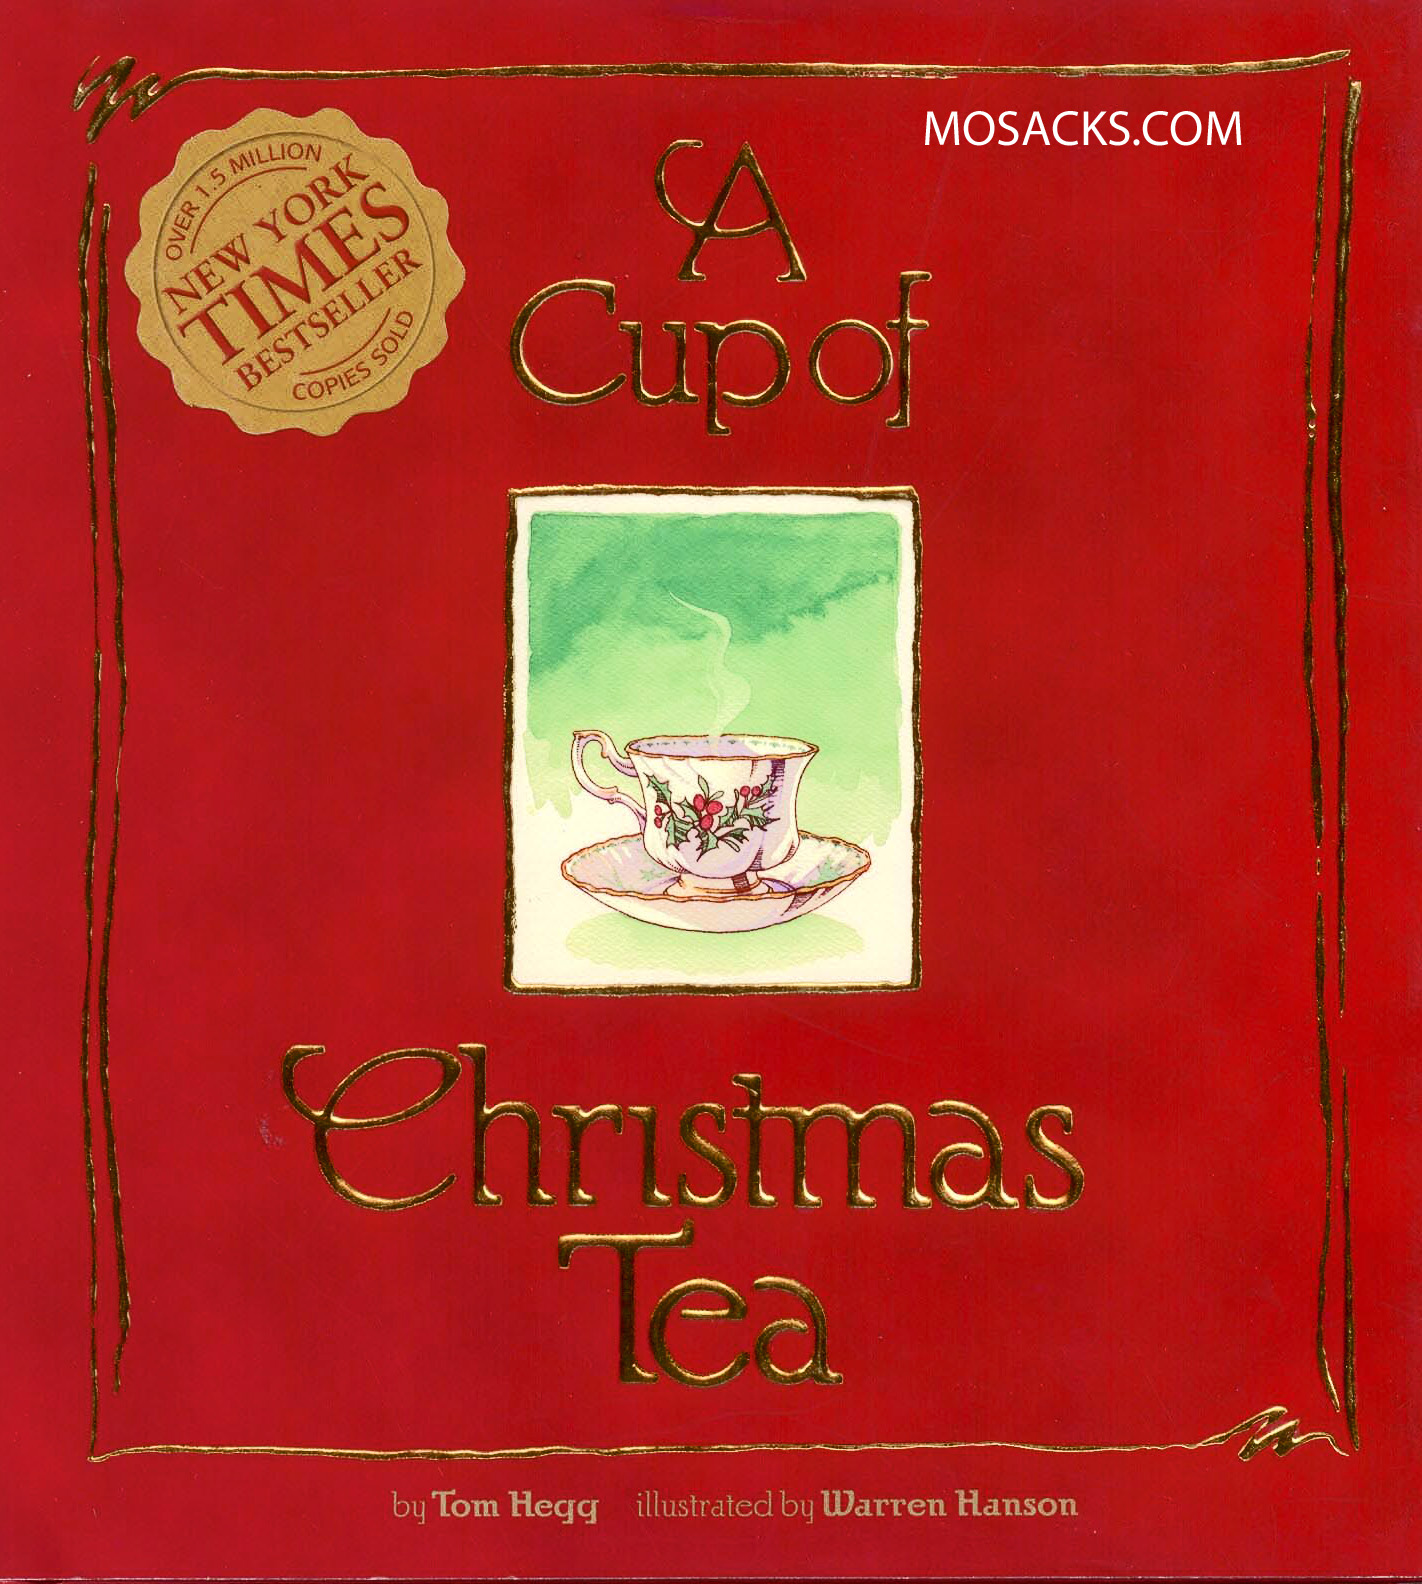 A Cup of Christmas Tea by Tom Hegg - New Edition coming